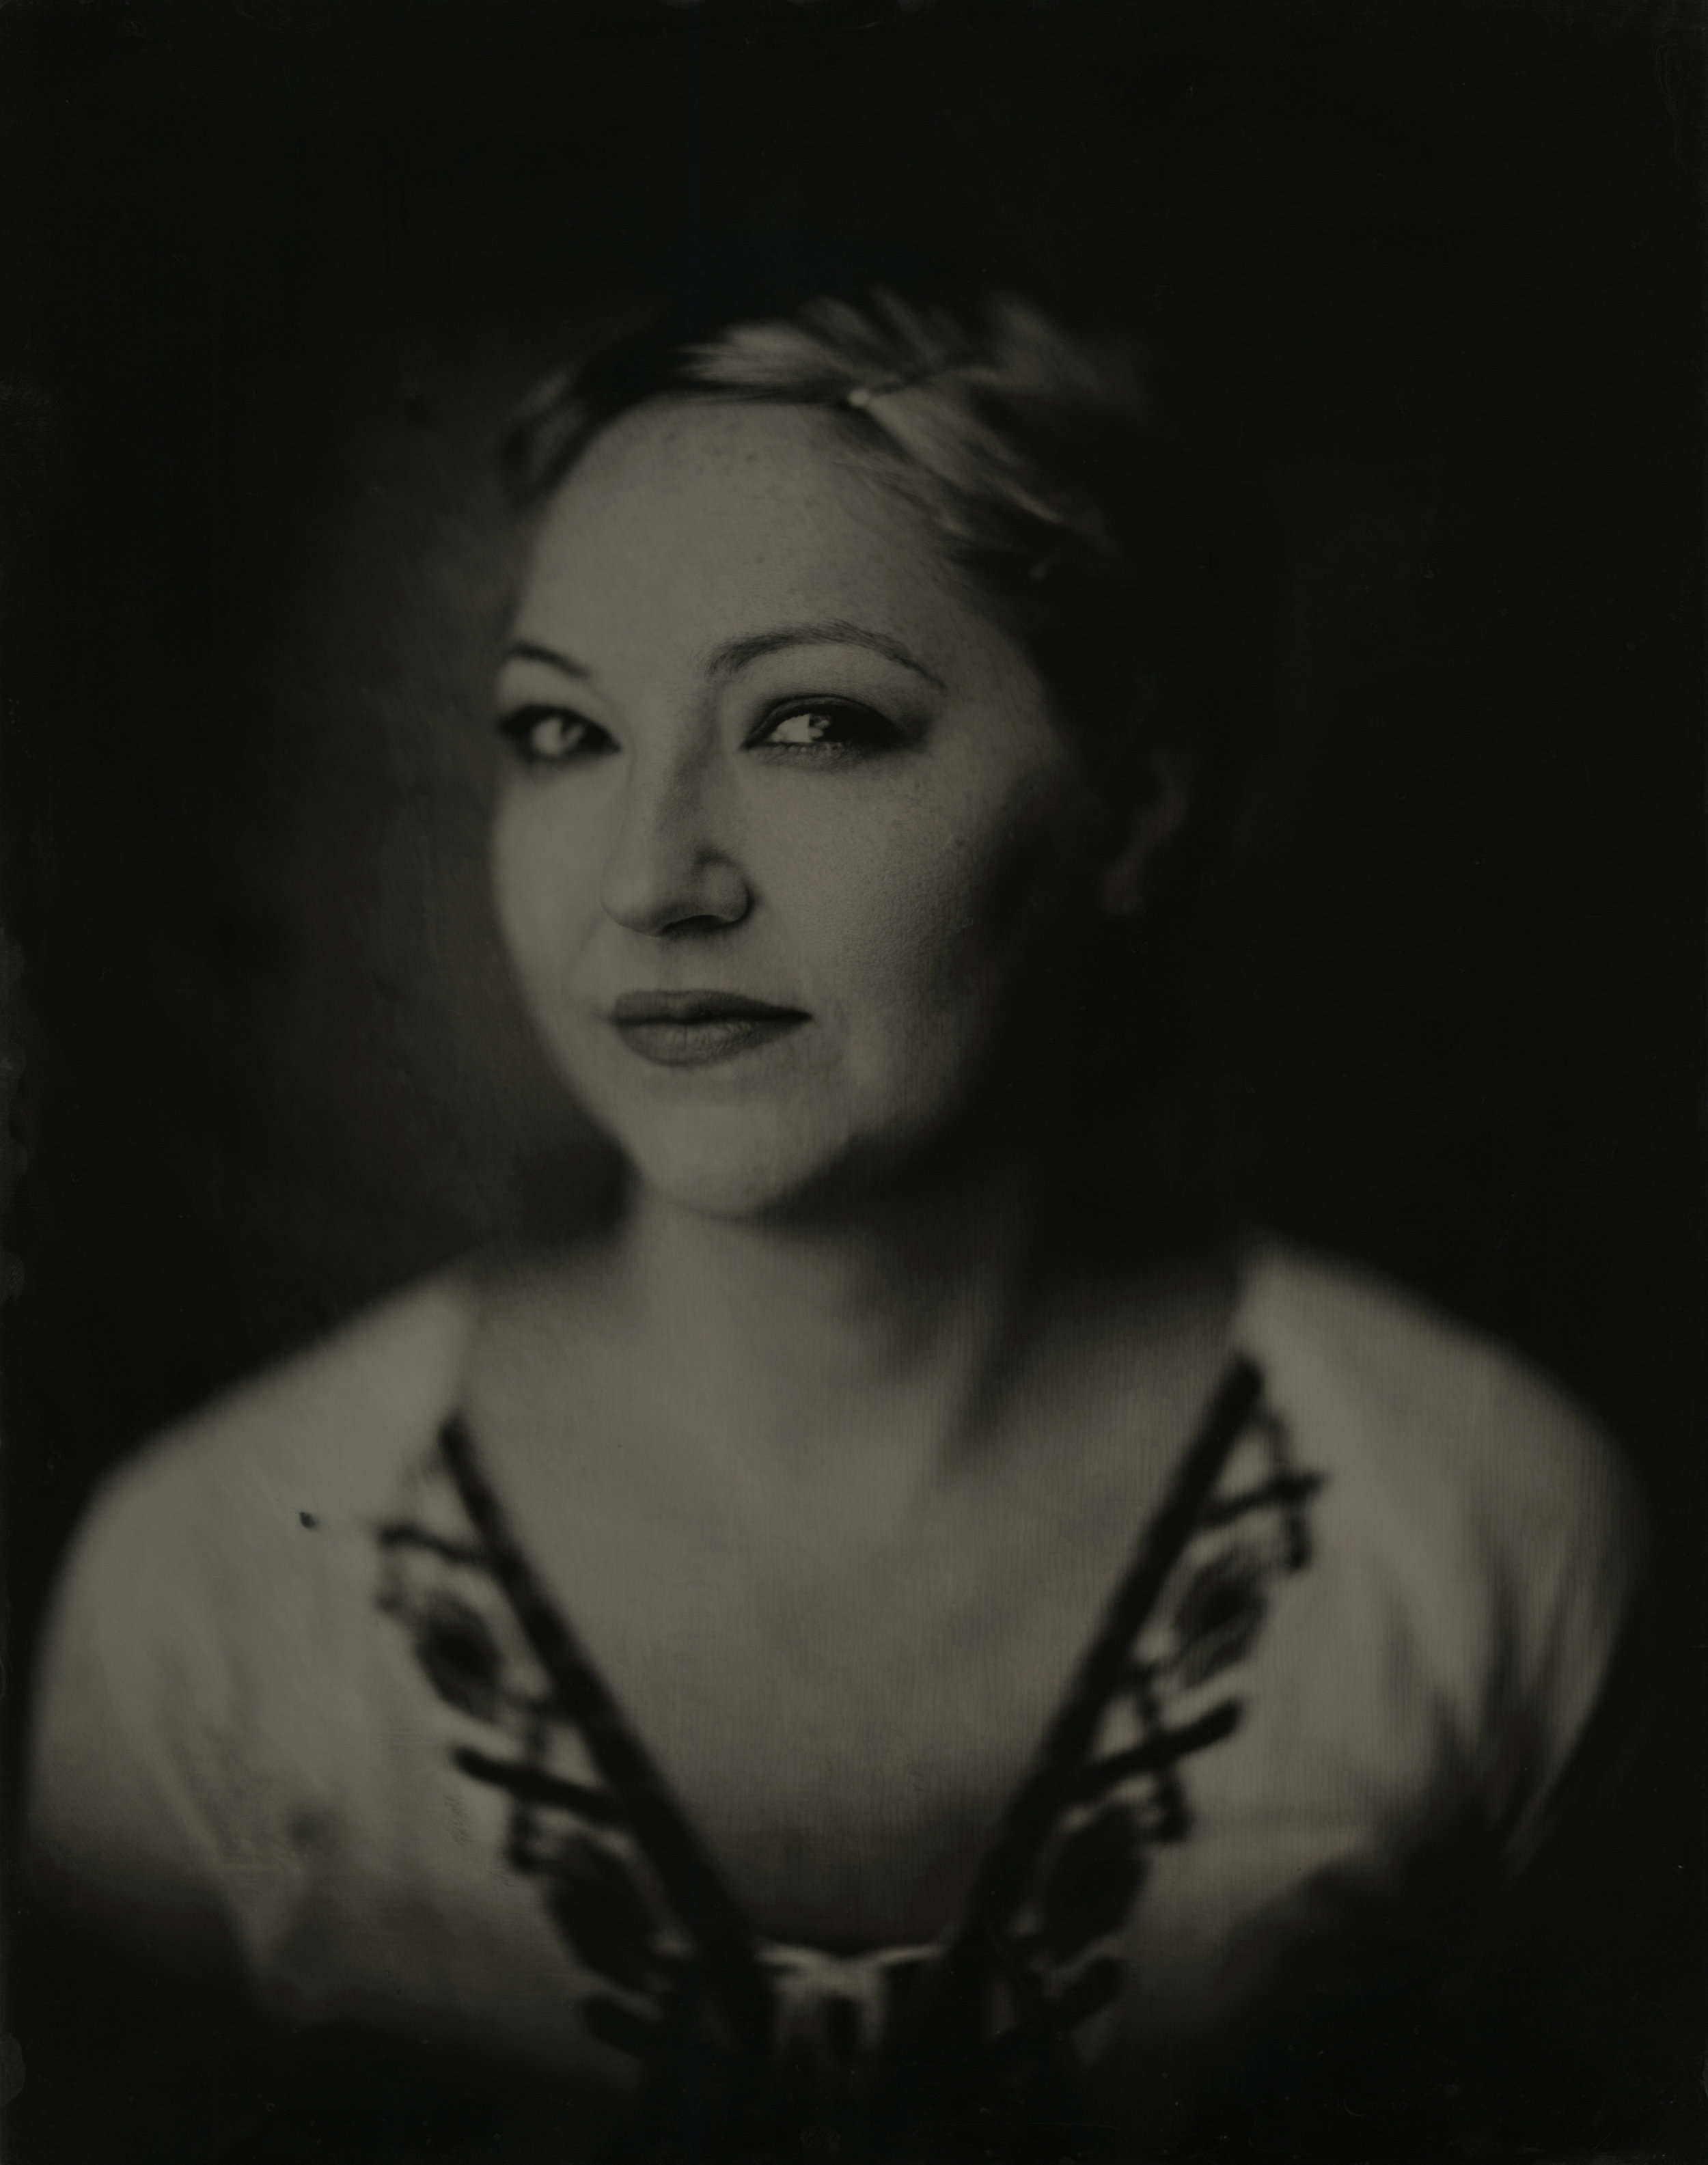 Mayo-Kathryn_Michelle-Hopkins-36_ambrotype.jpg